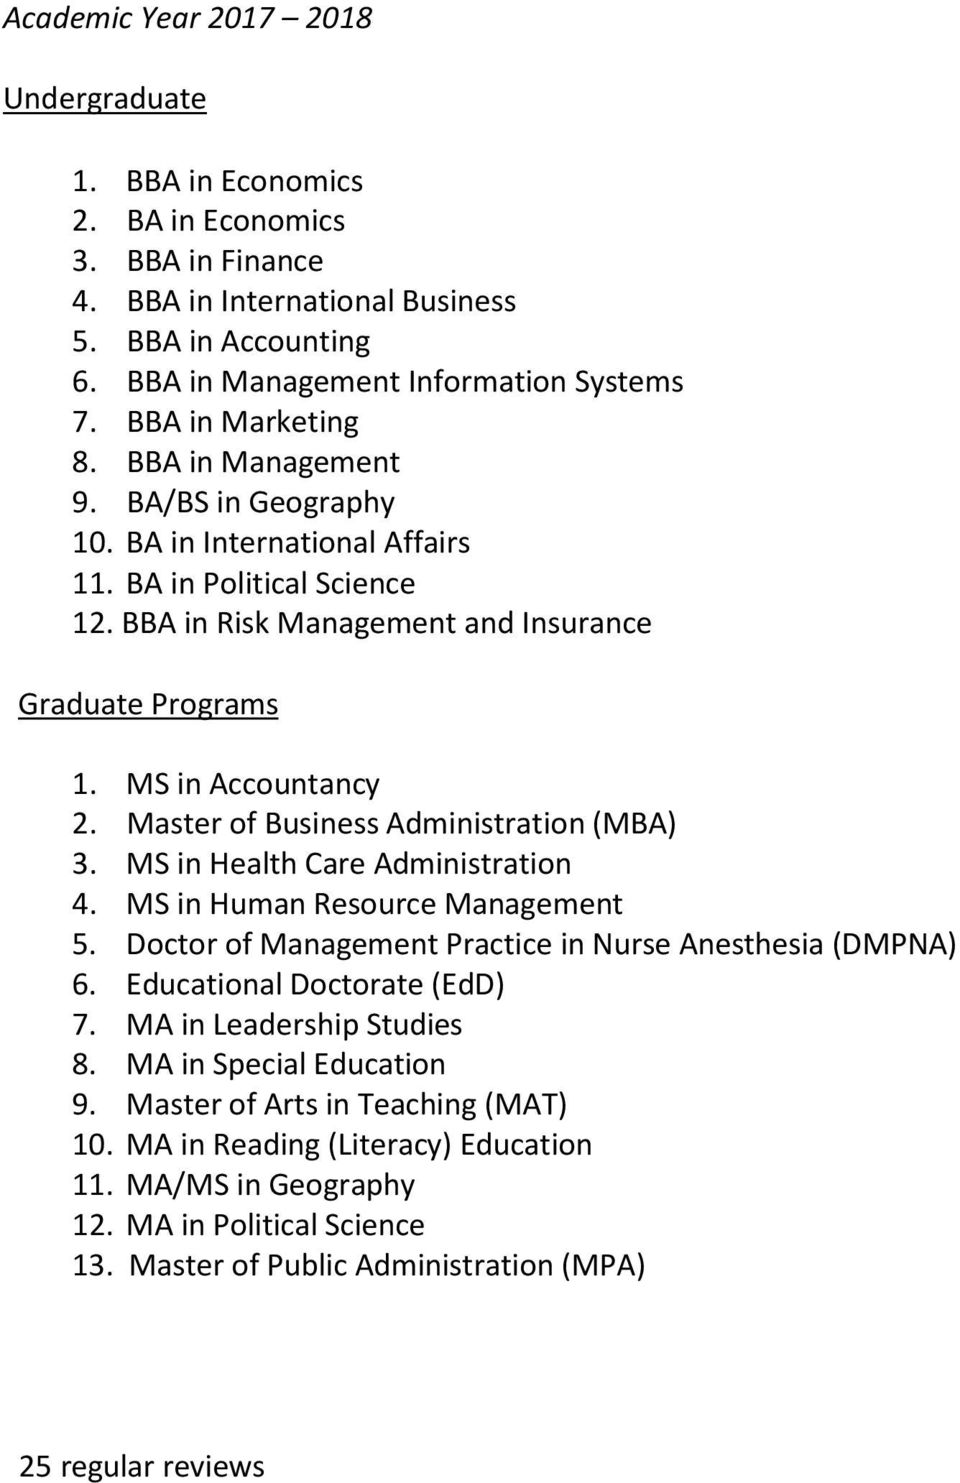 Master of Business Administration (MBA) 3. MS in Health Care Administration 4. MS in Human Resource Management 5. Doctor of Management Practice in Nurse Anesthesia (DMPNA) 6.